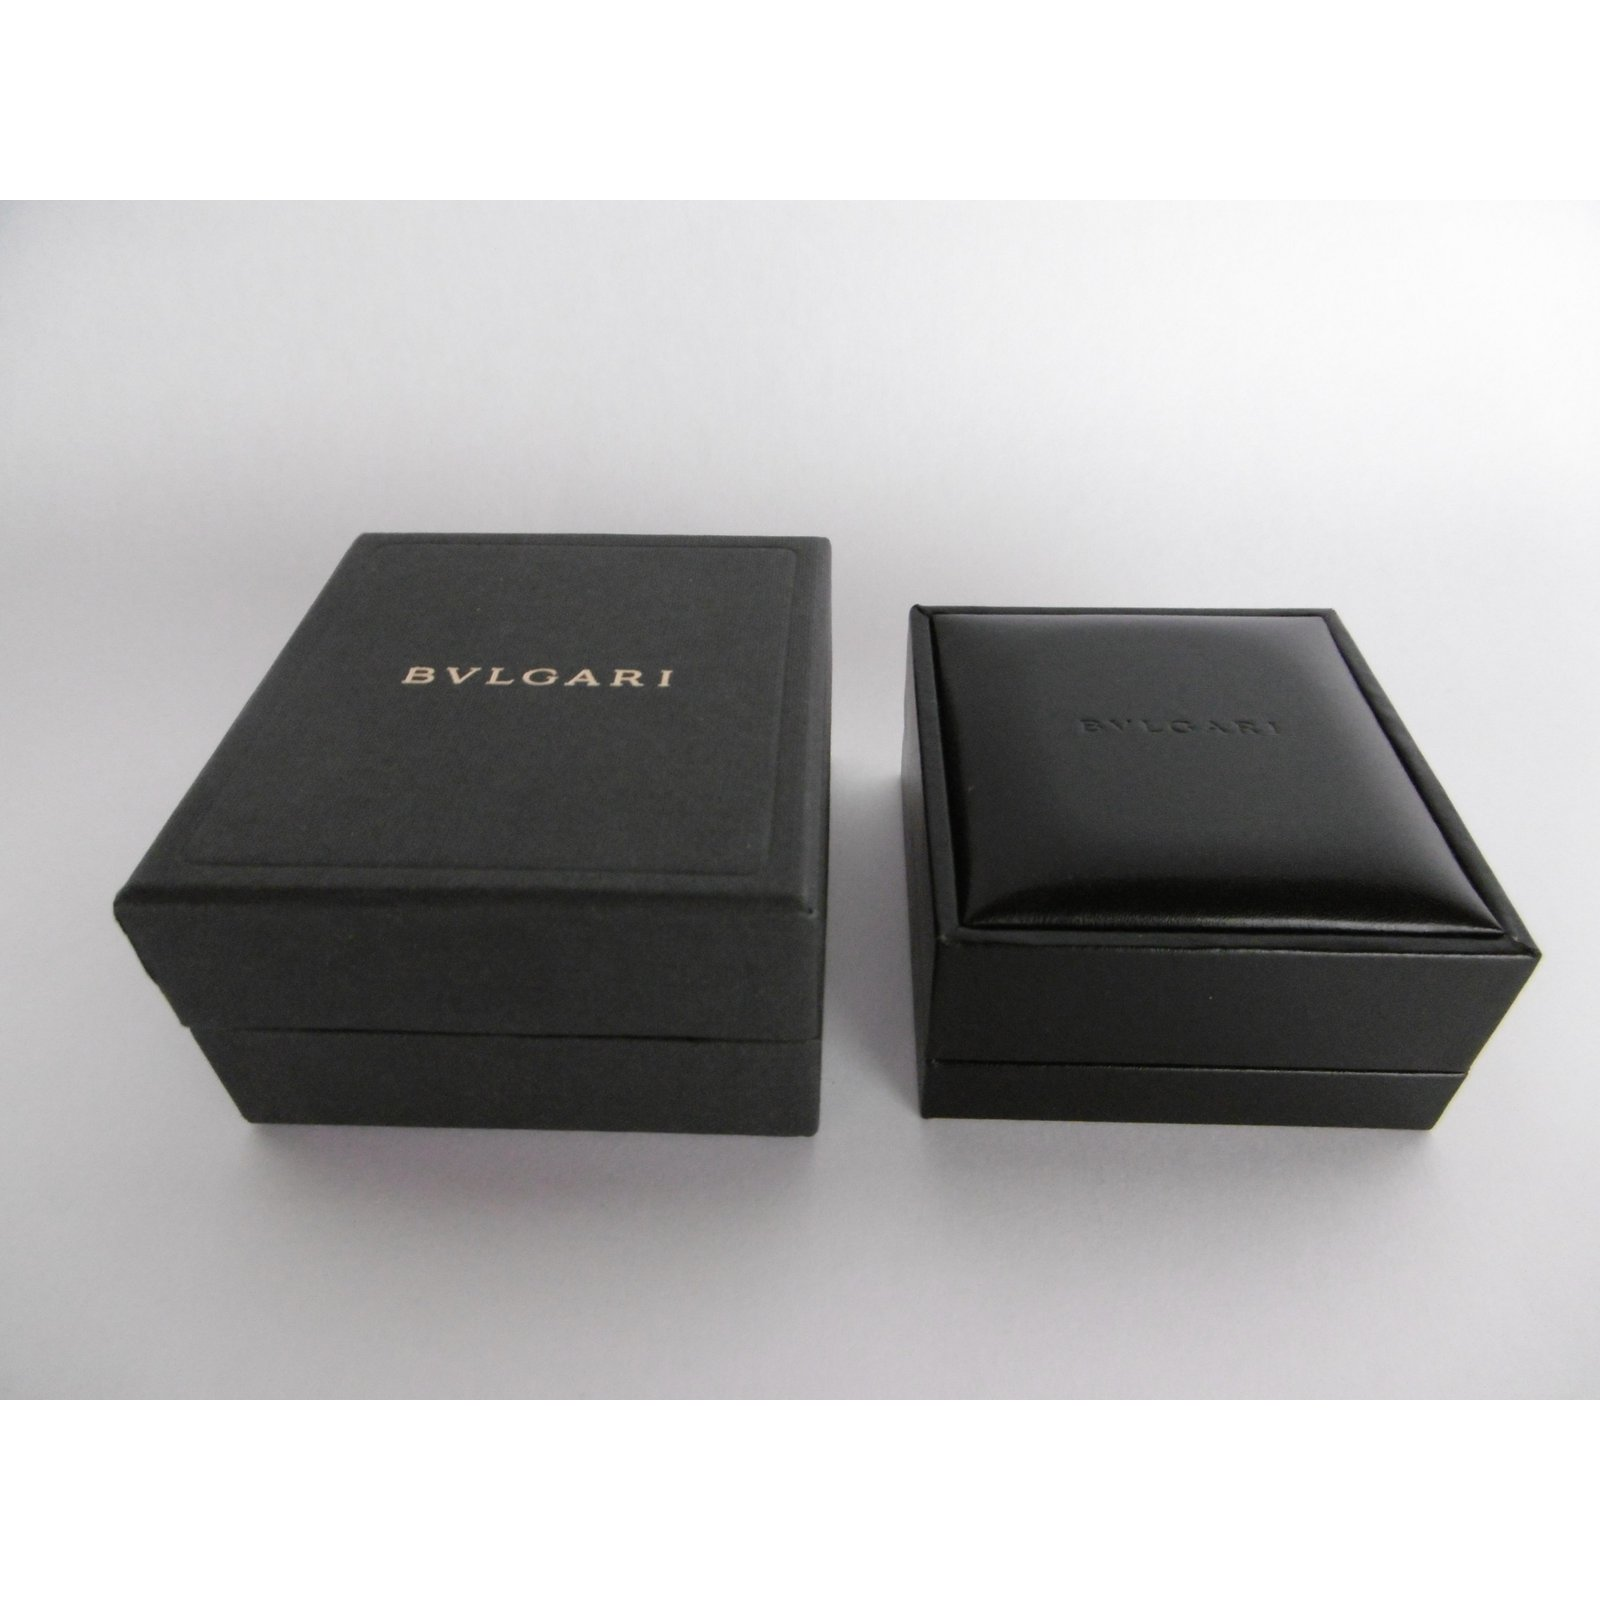 Bulgari Bulgari Earrings Jewelry Box Inner Box and Outer Box Misc